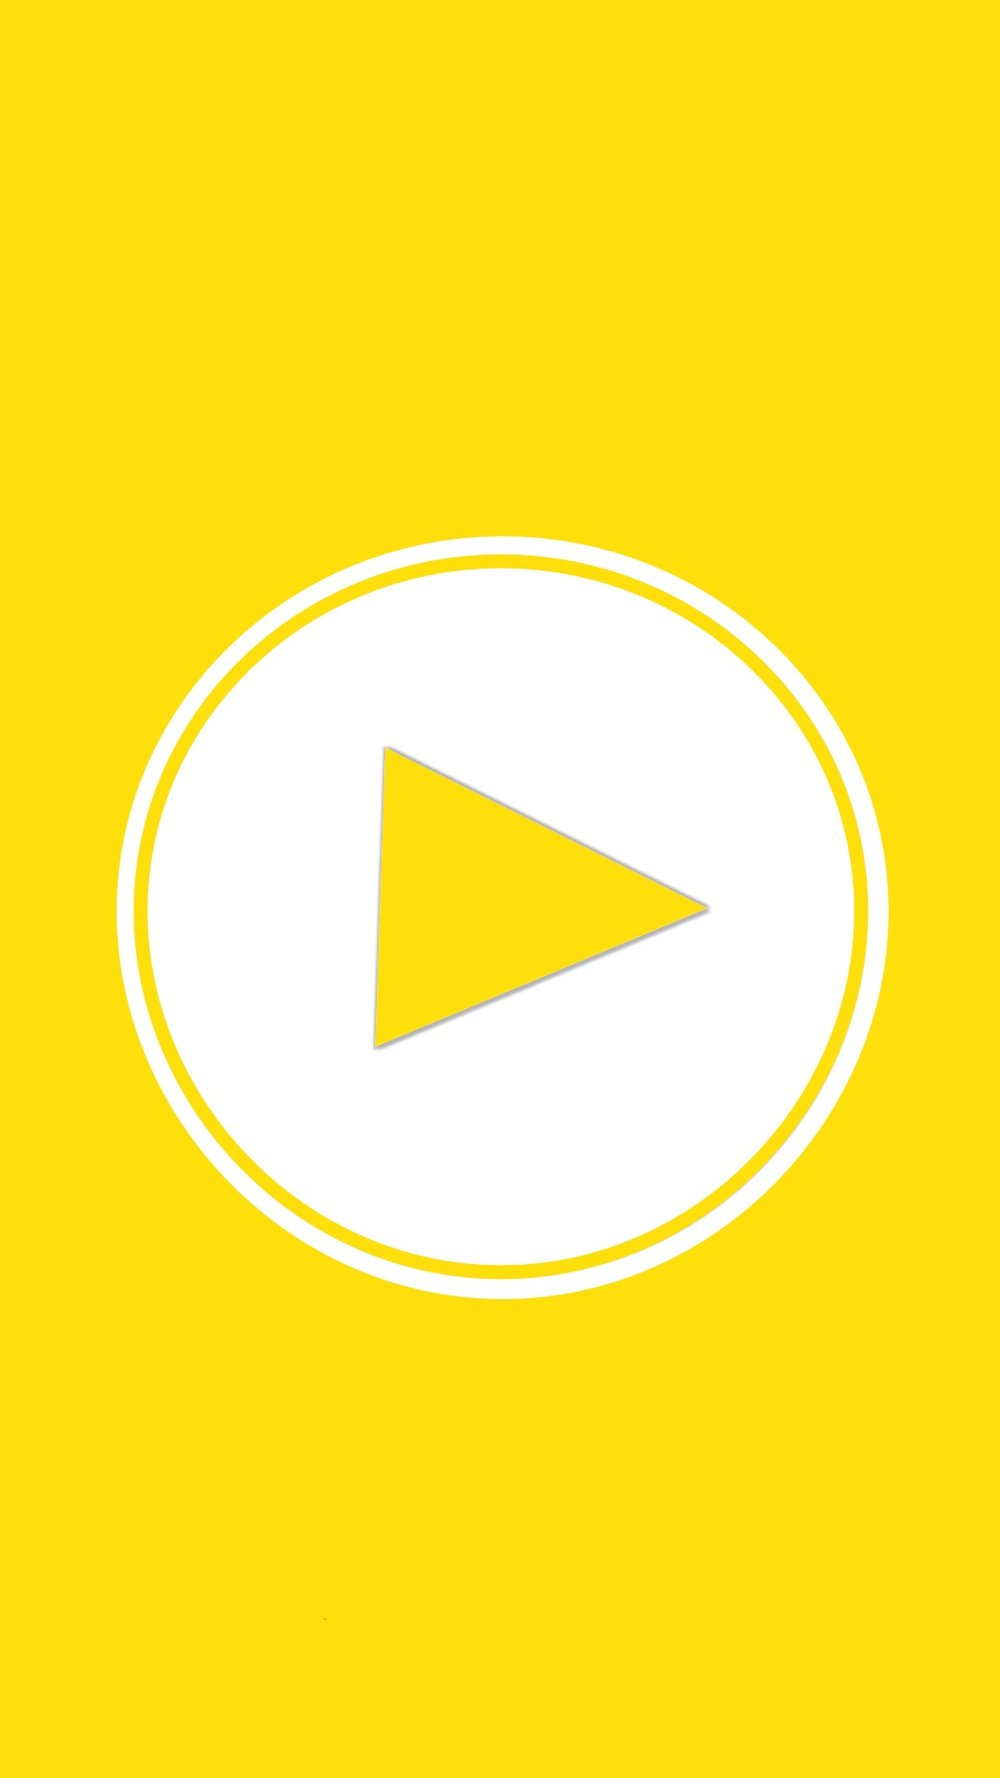 Instagram-cover-play-magnify-yellow-lotnotes.com.jpg